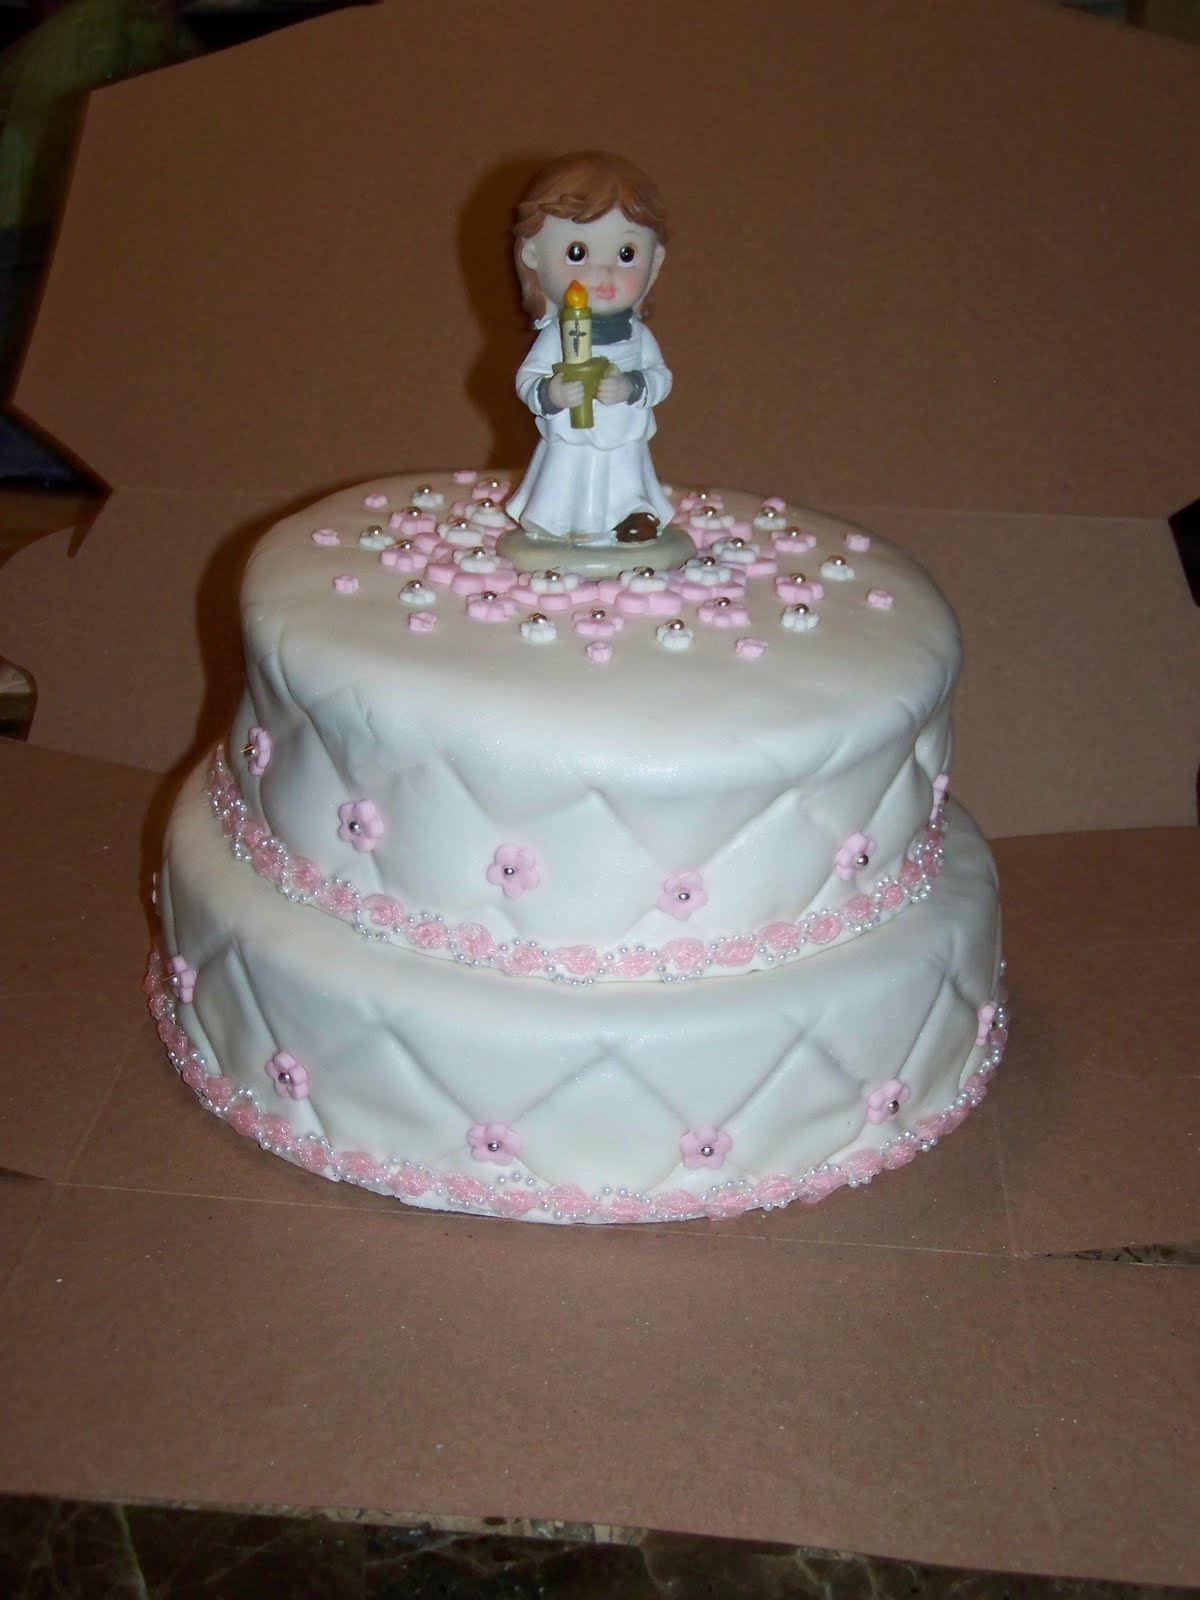 First Communion Cake Images : Cake-A-Licious: First Communion Cake